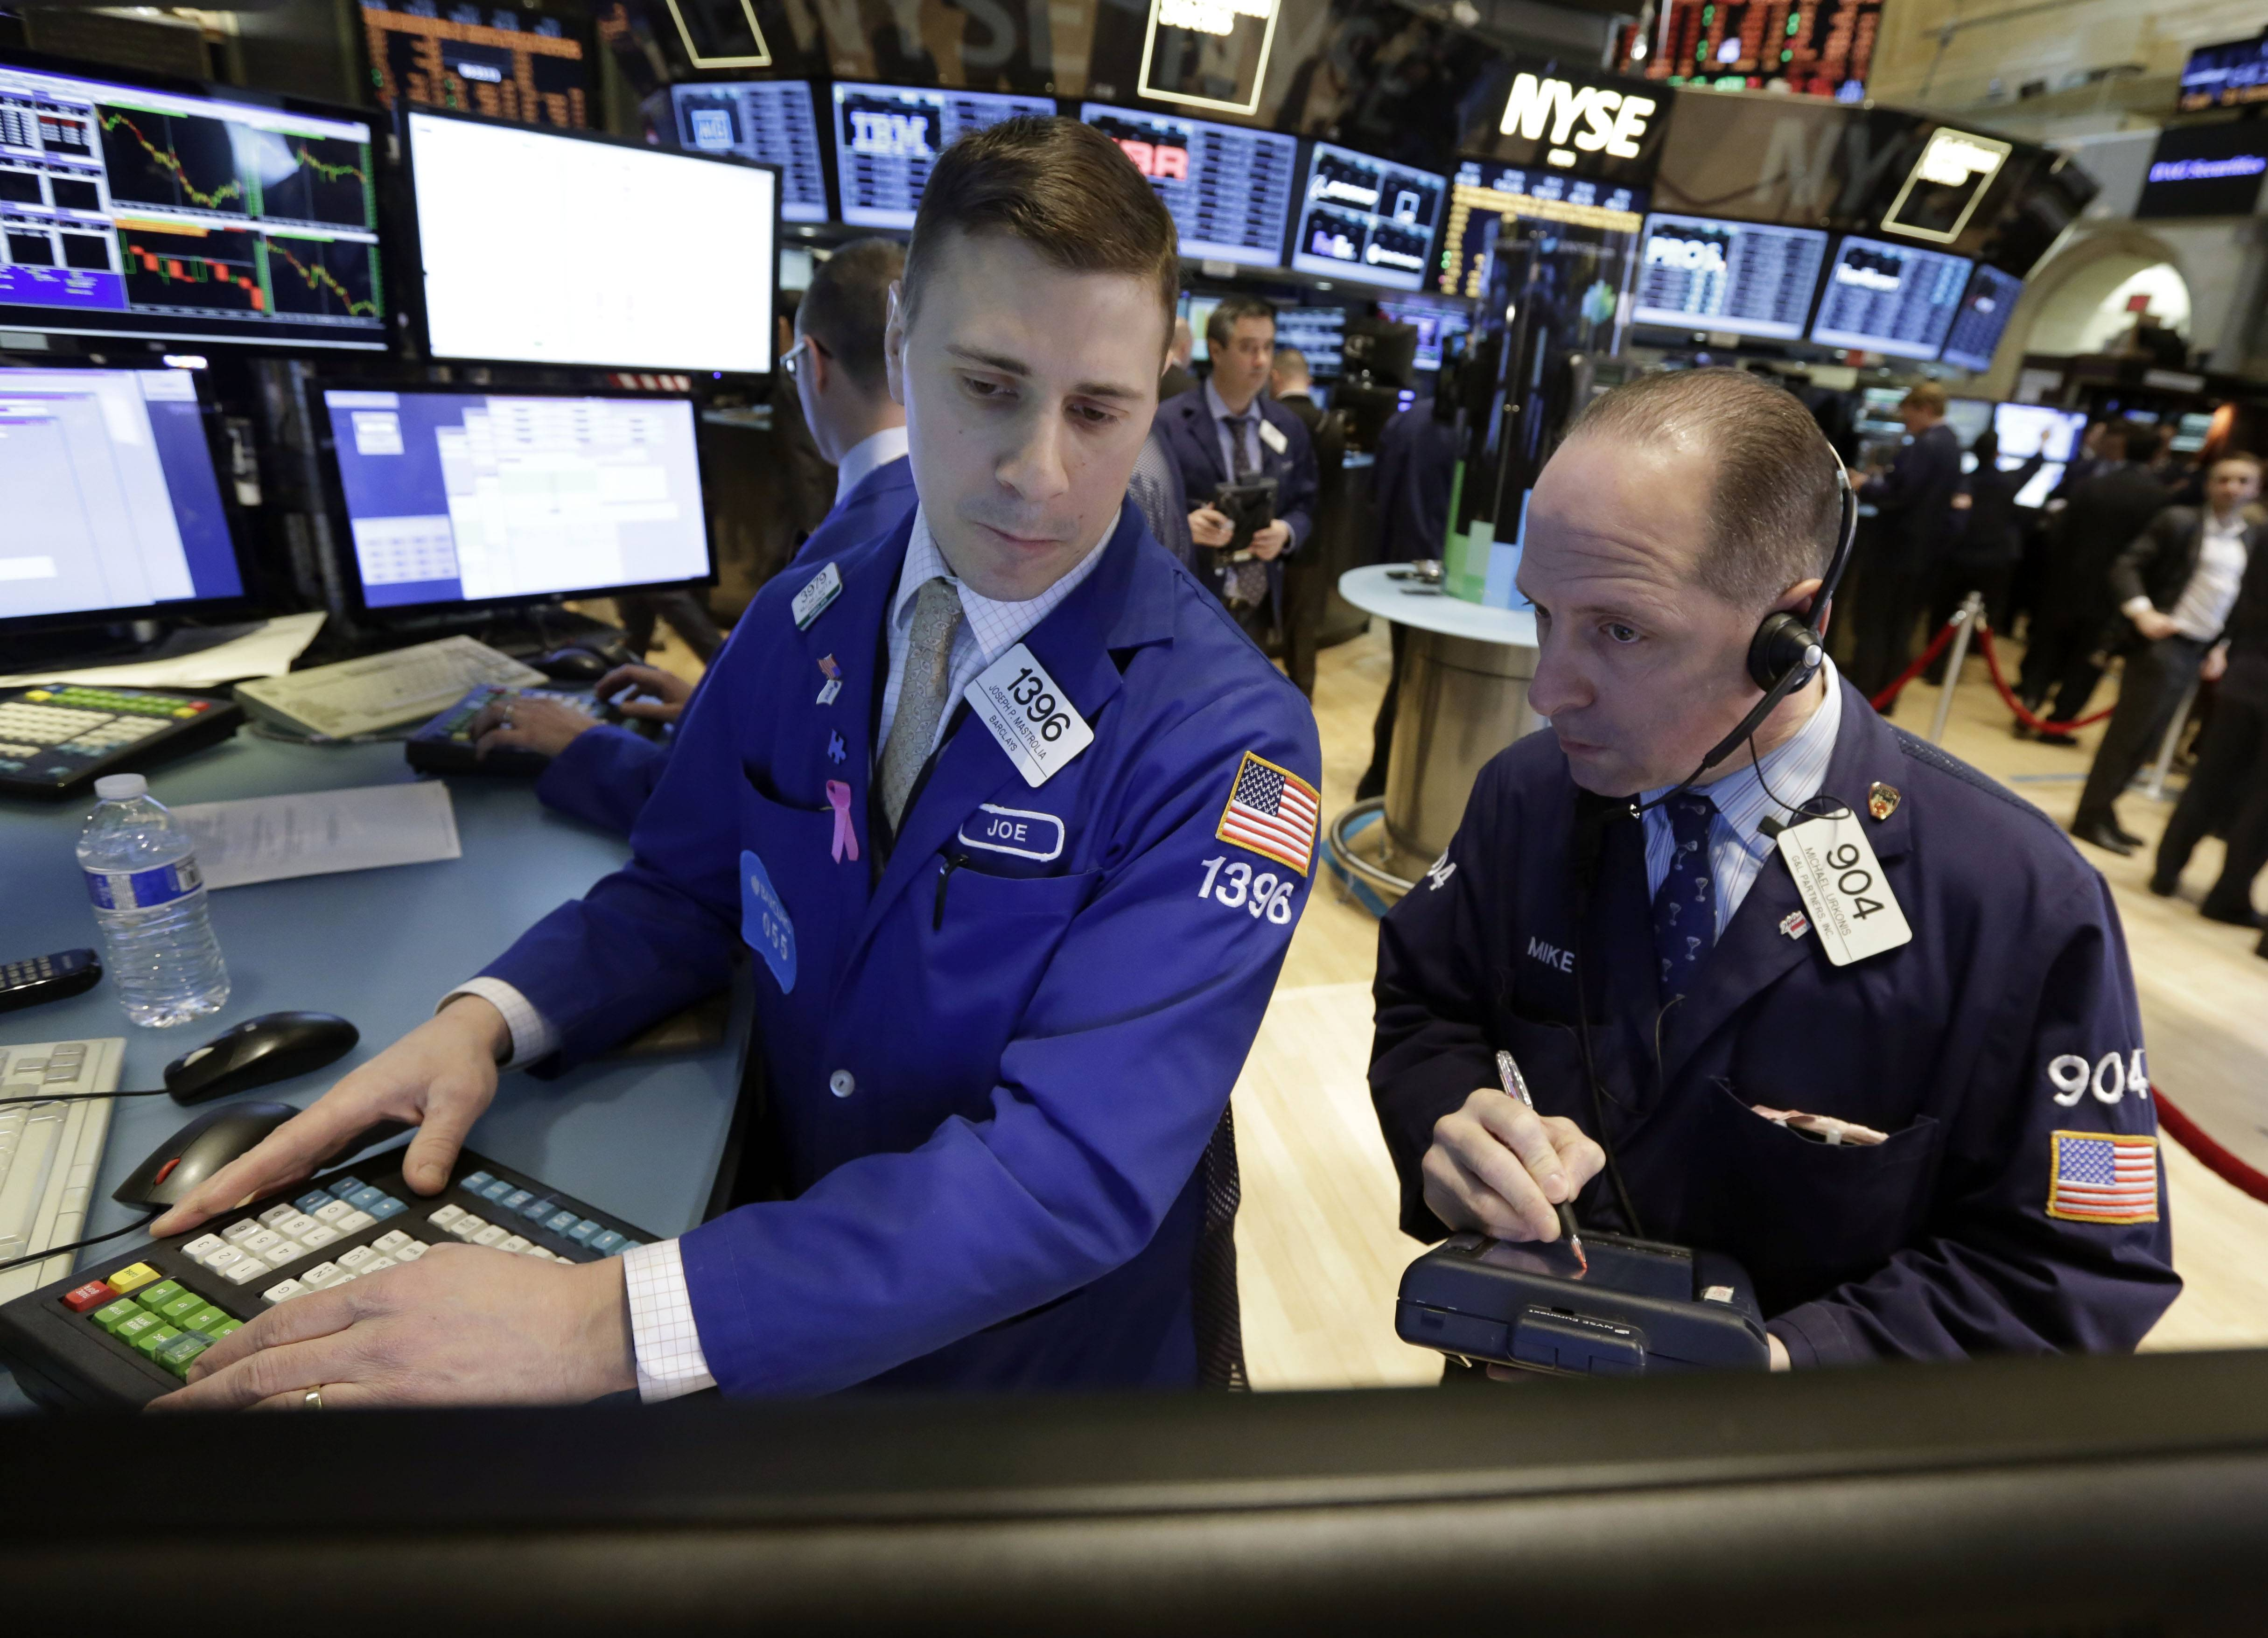 Stocks on Tuesday advanced for the first time in three days as commodity and health-care shares rallied and economic data showed consumer confidence at a six-year high.